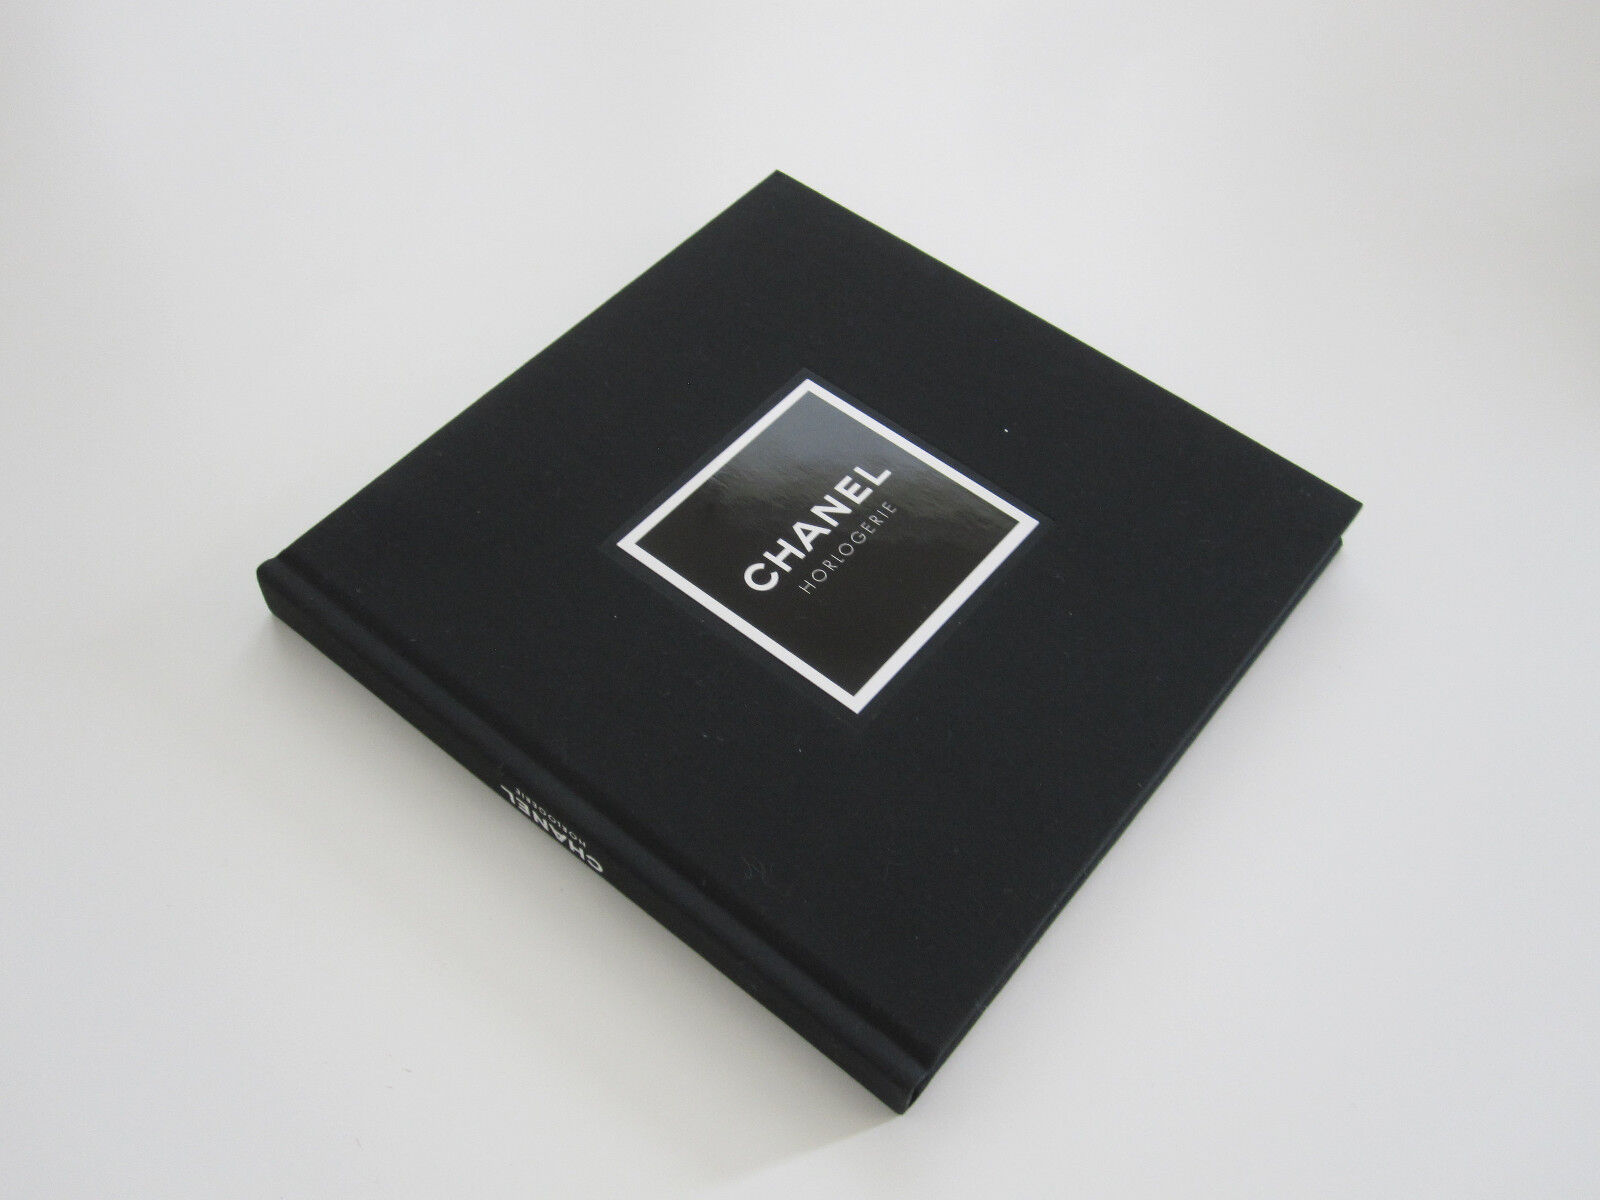 CHANEL Hardcover Coffee Table Book Watch VIP NEW